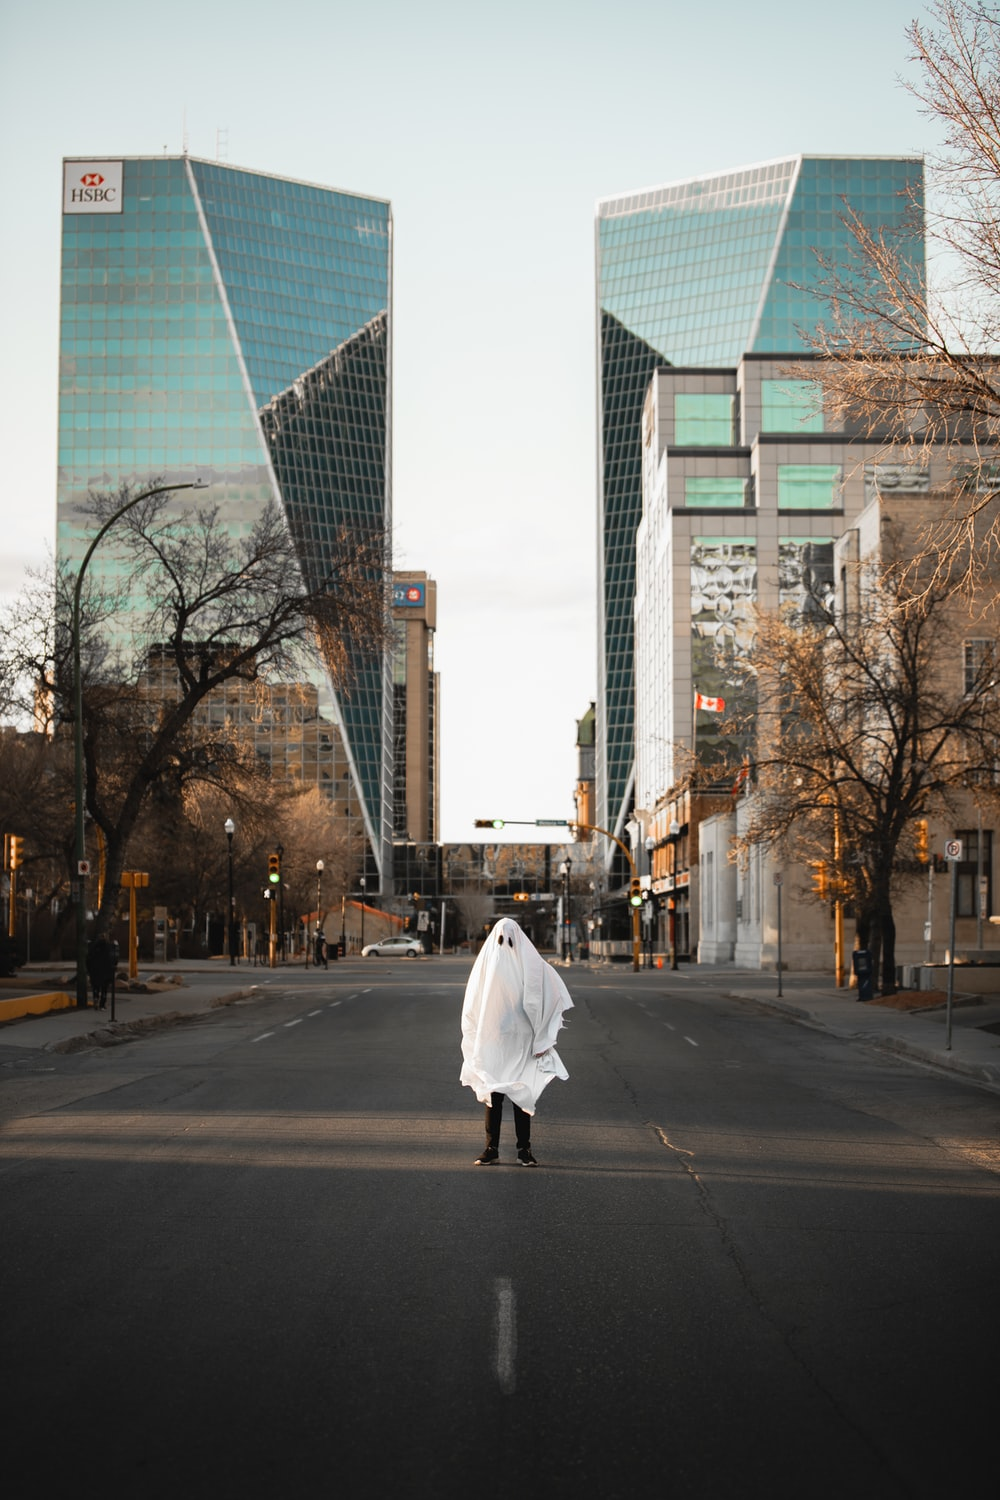 woman in white coat walking on the street during daytime